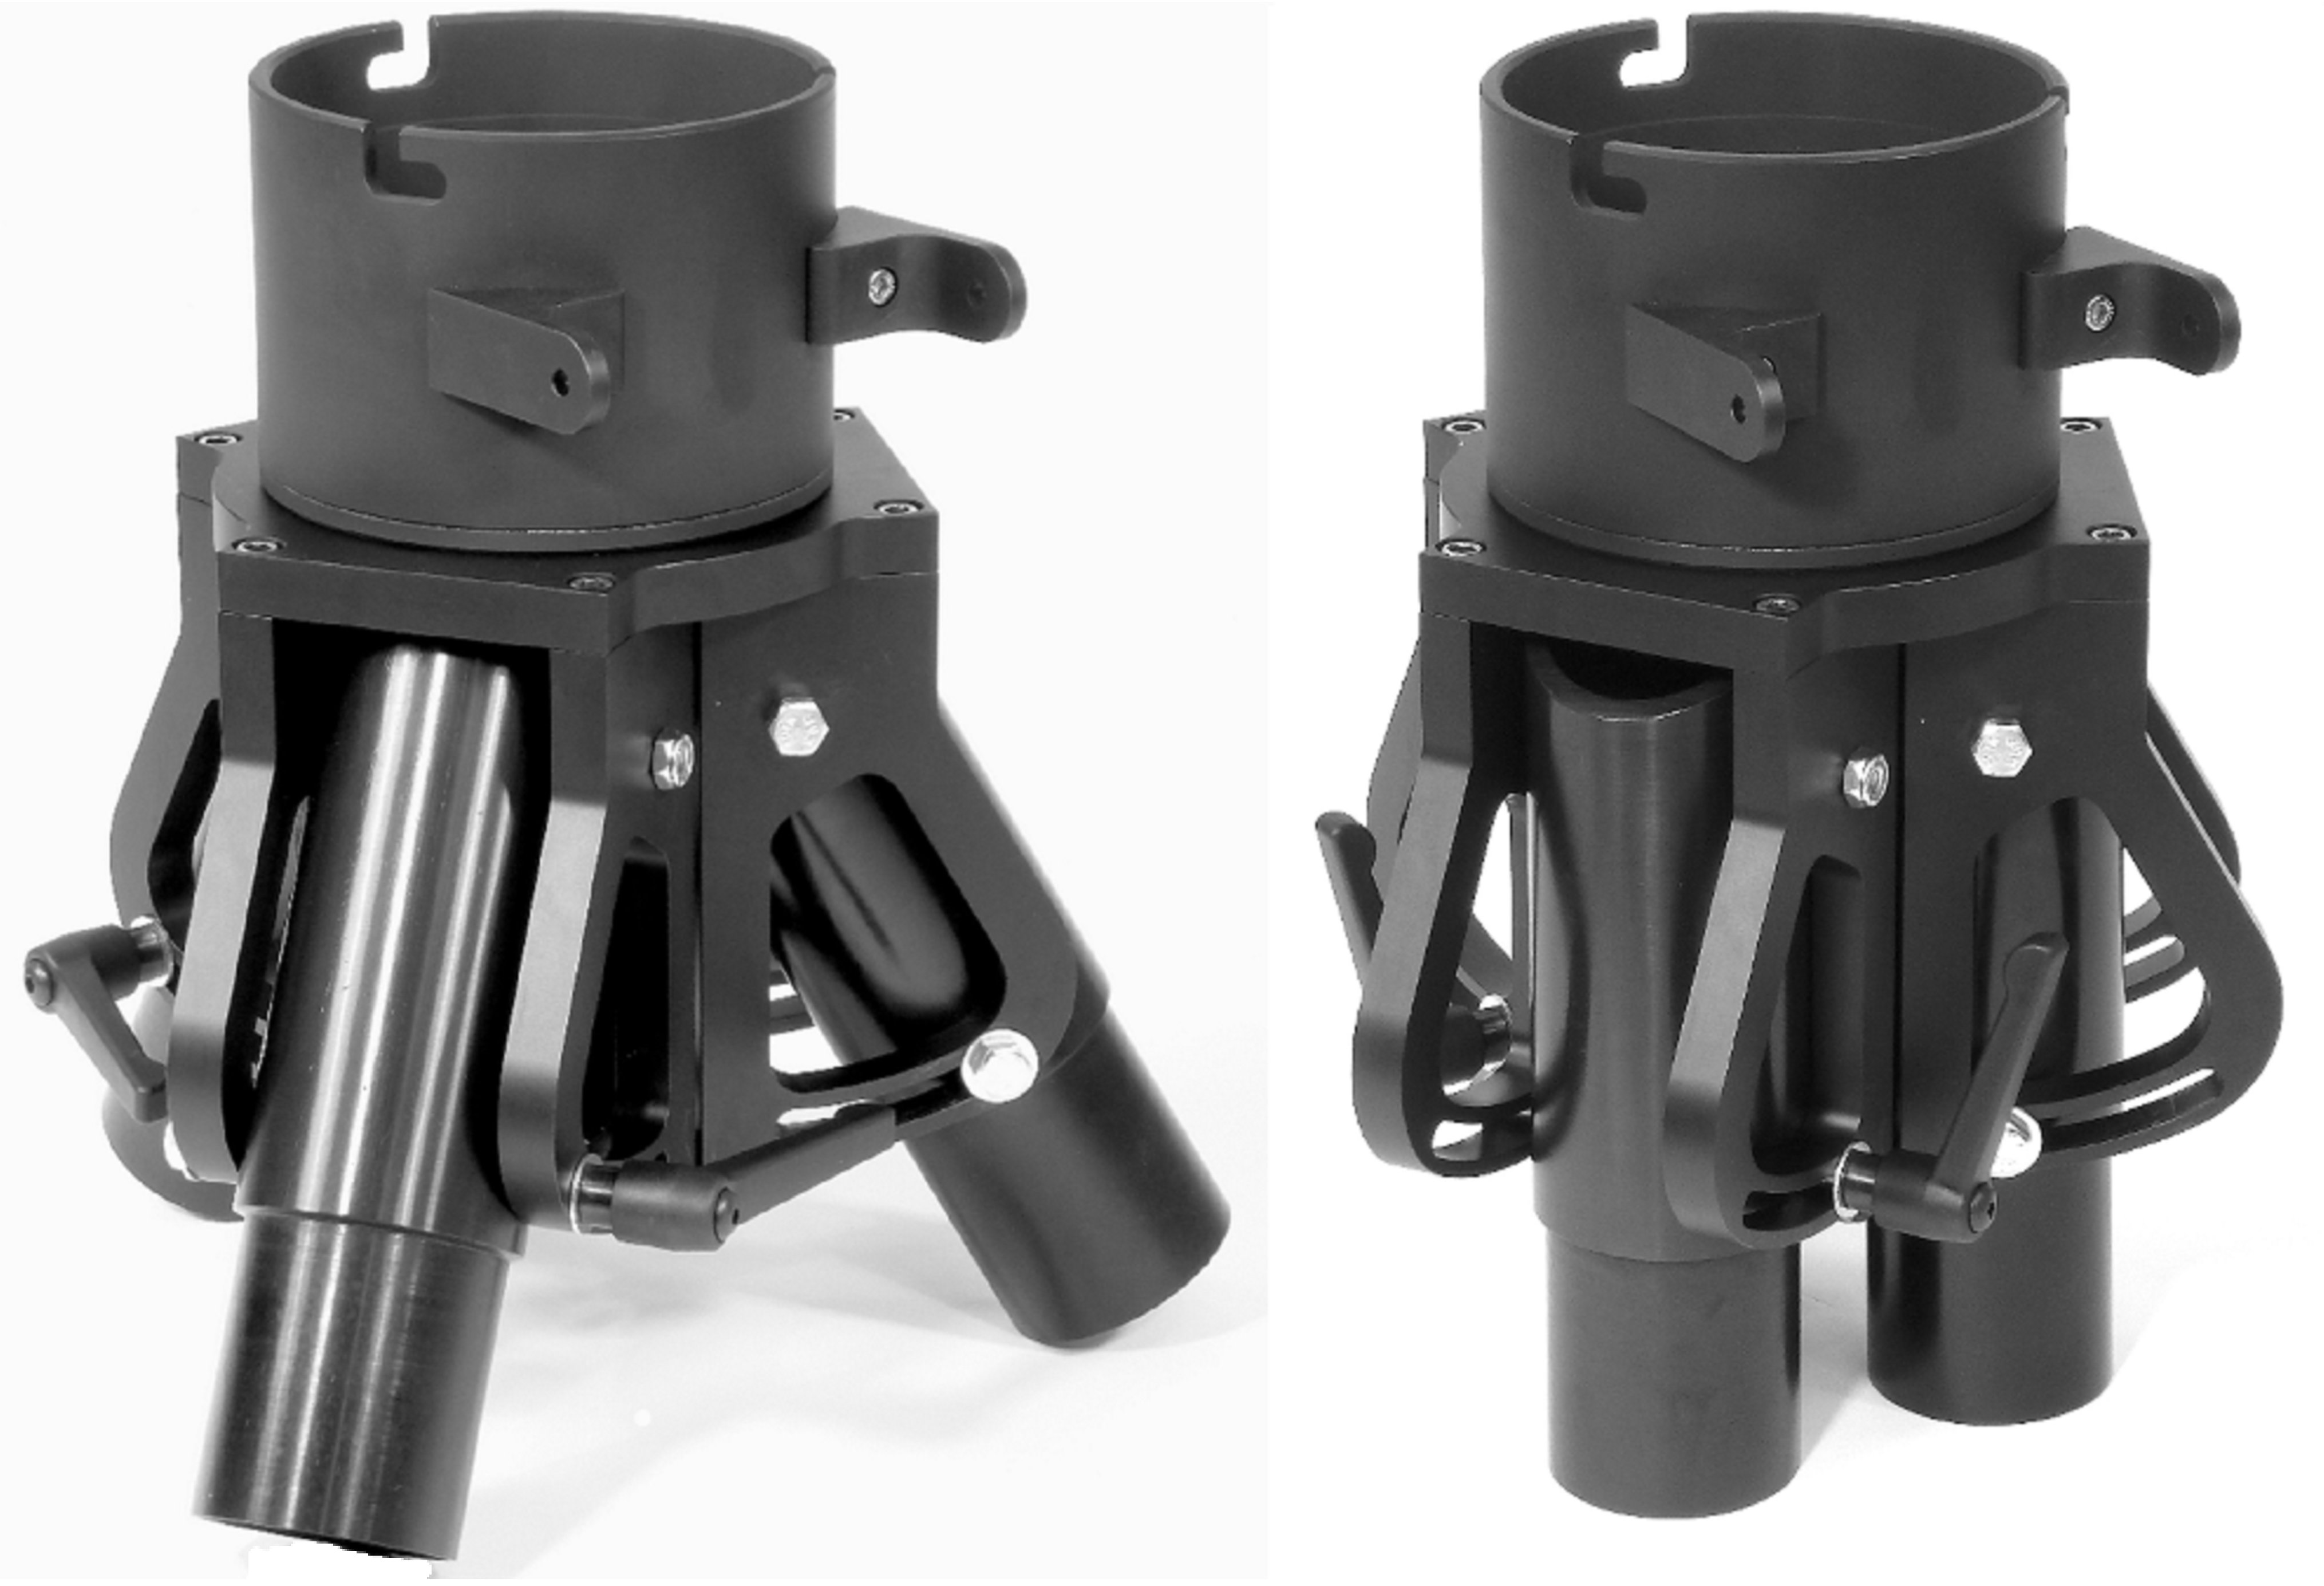 Tripods / Pier Adapters